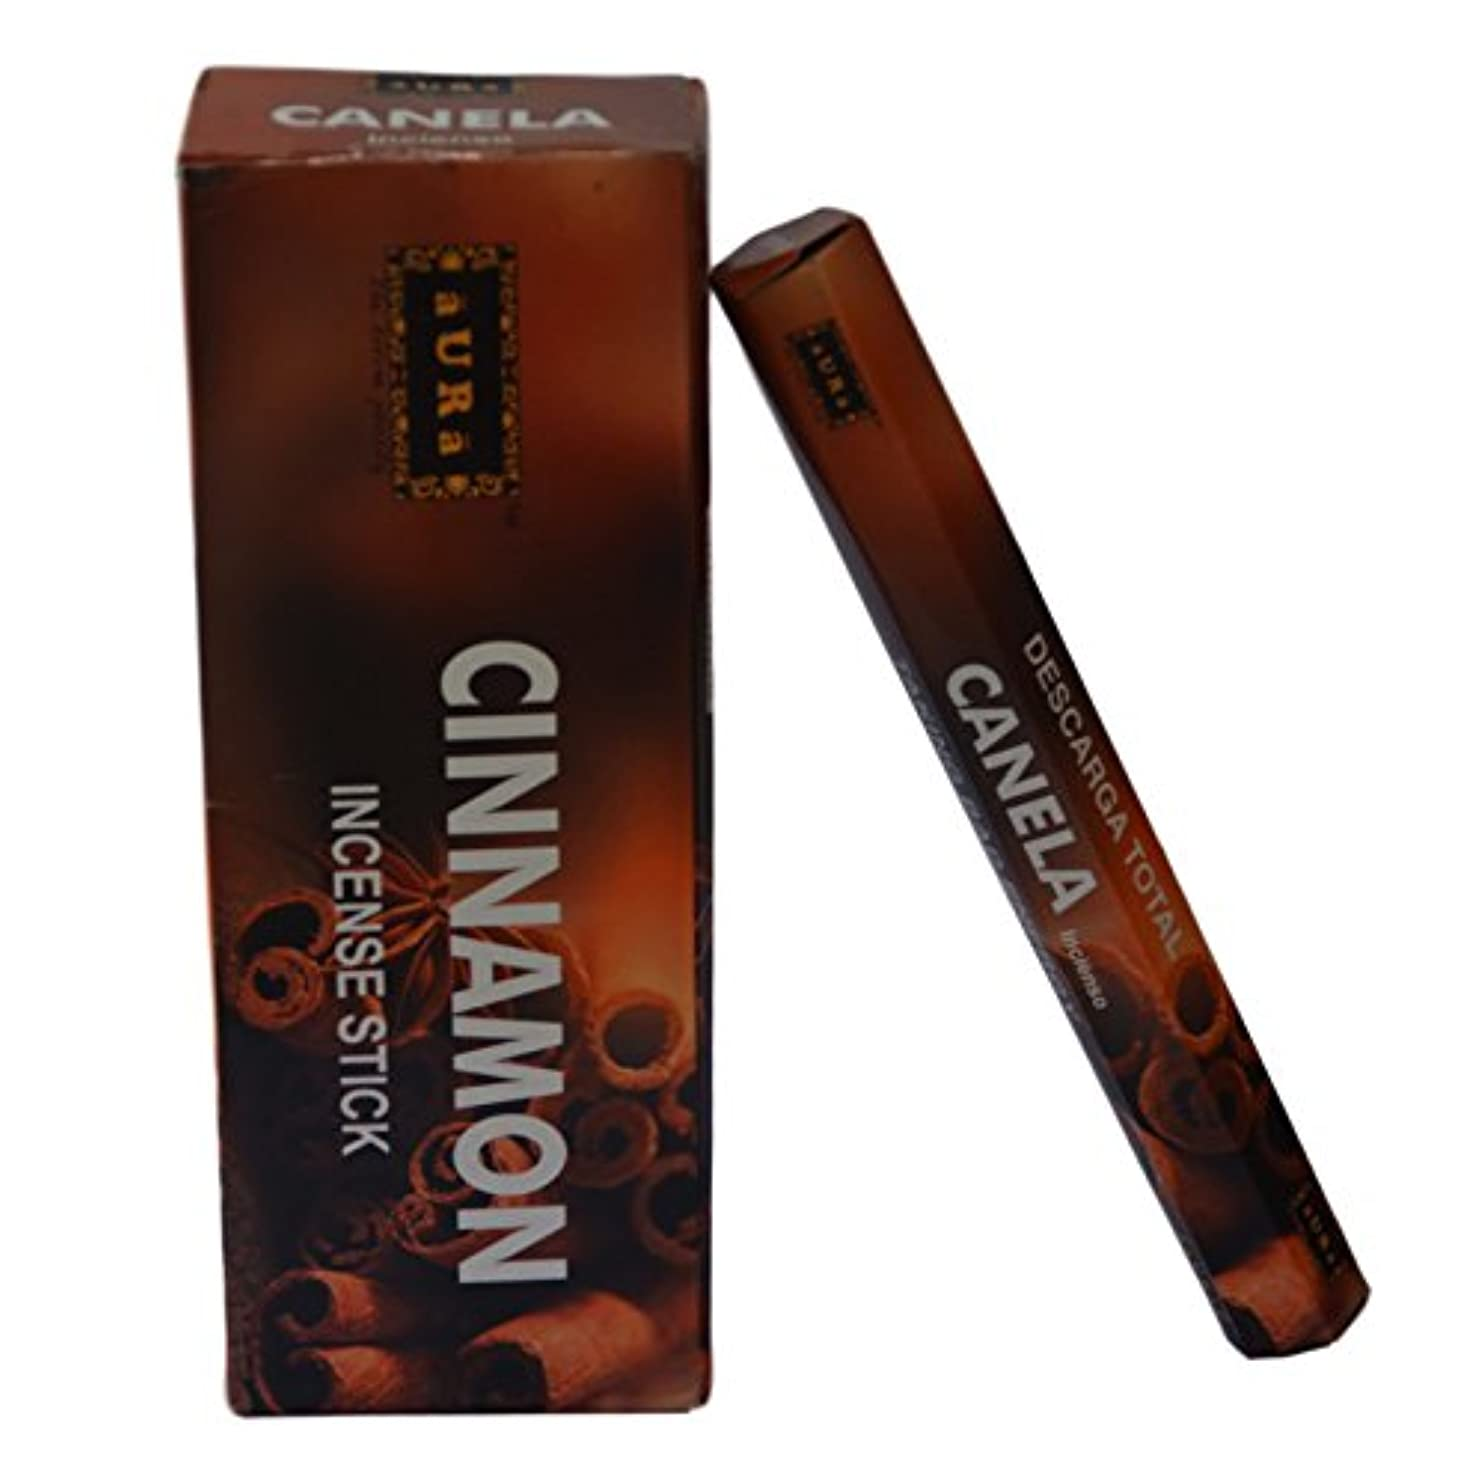 邪魔する領収書胚芽オーラCinnamon Scented Incense Sticks、プレミアム天然Incense Sticks、六角packing- 120 Sticks